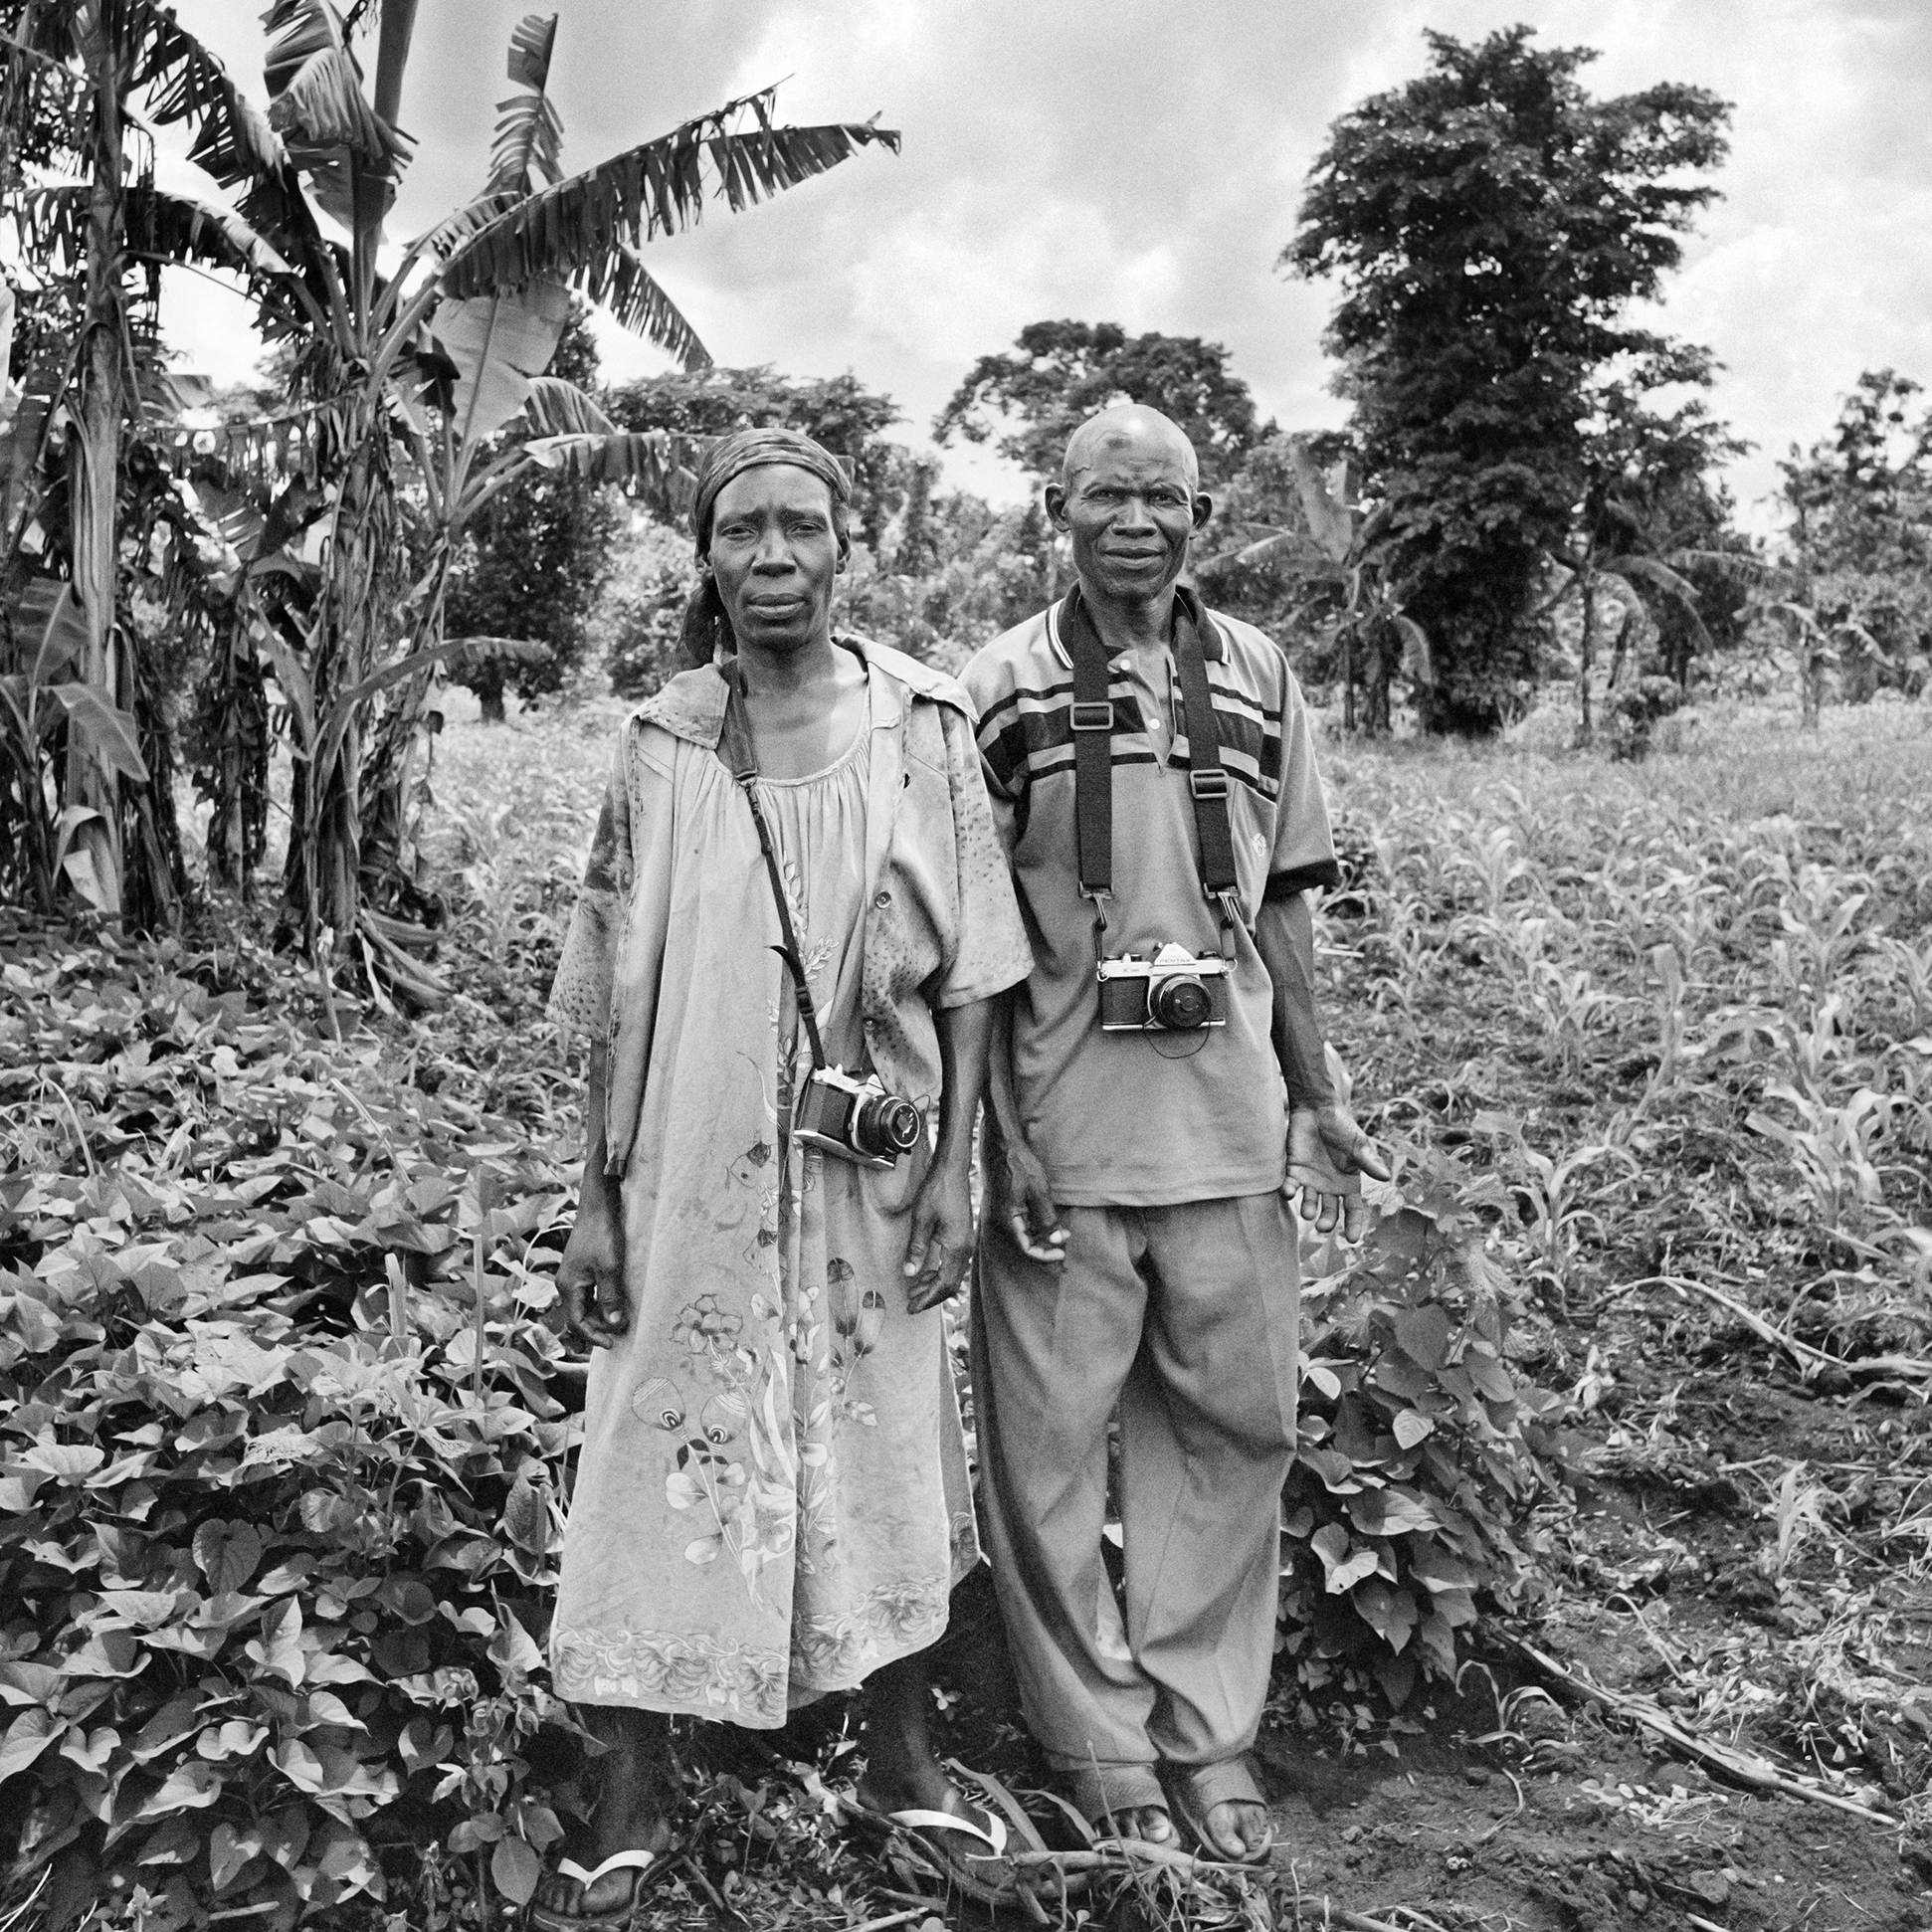 WPC members (from left to right)Athieno Jane and Waiswa John standing in Jane's garden after a long photo-walk.